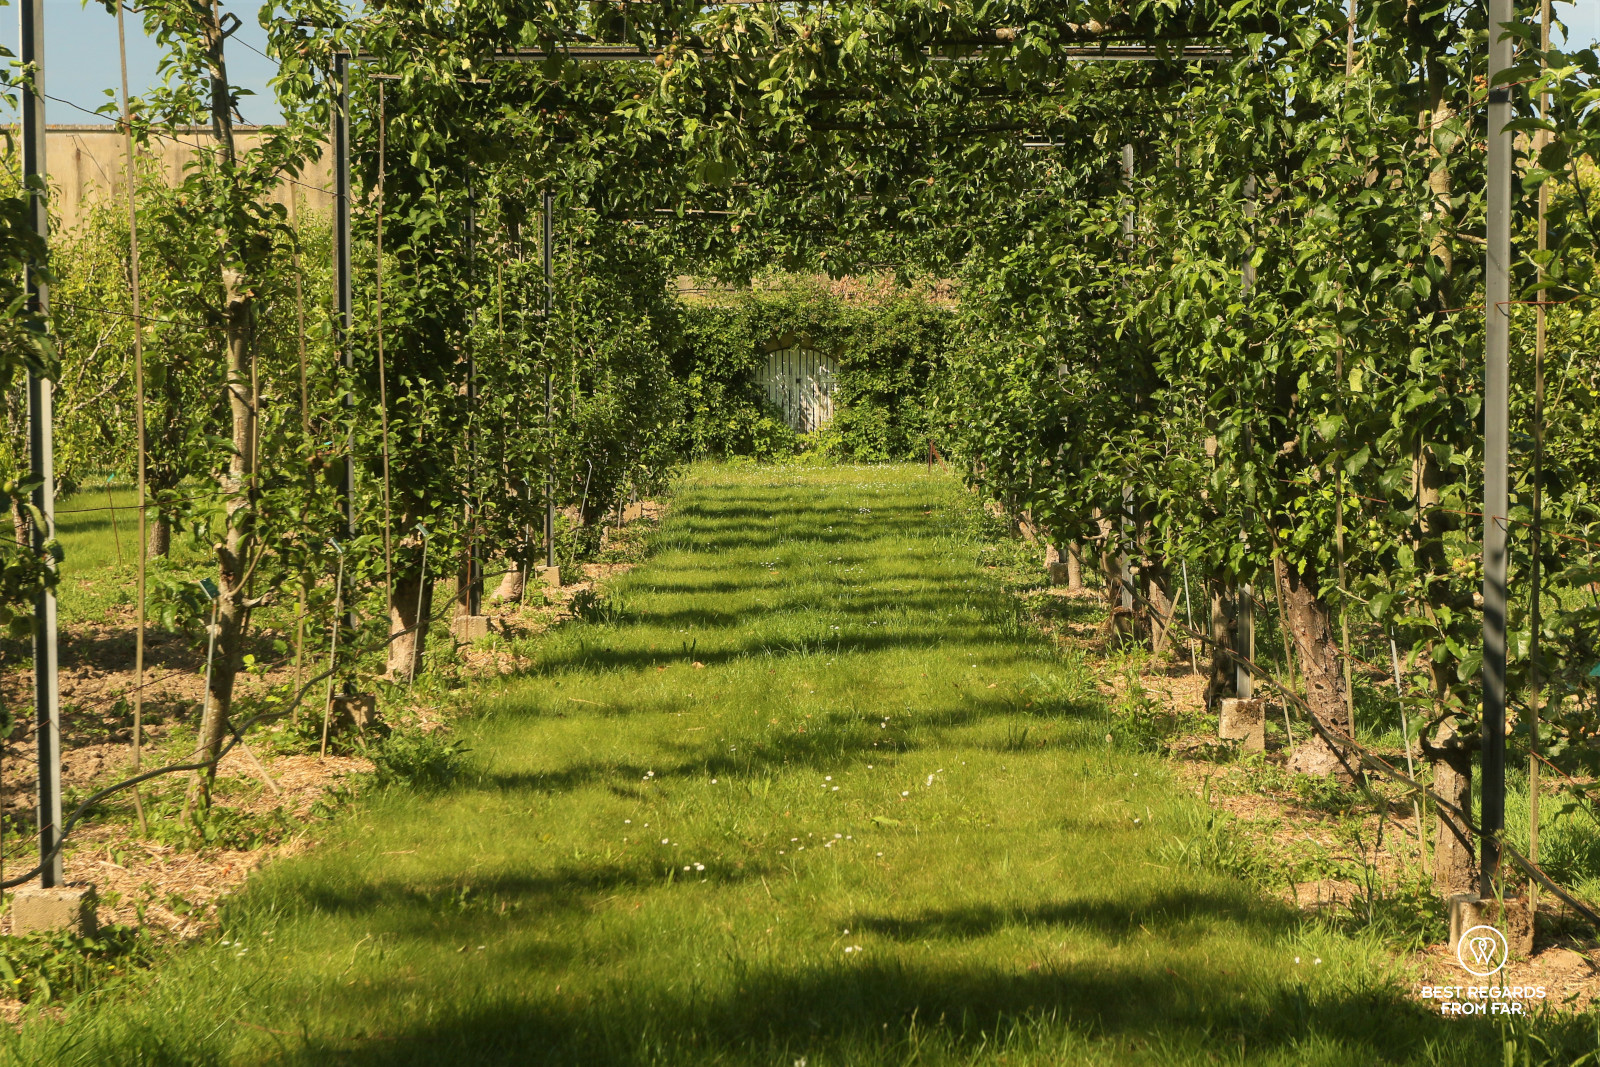 Orchard at the King's Kitchen Garden in Versailles.